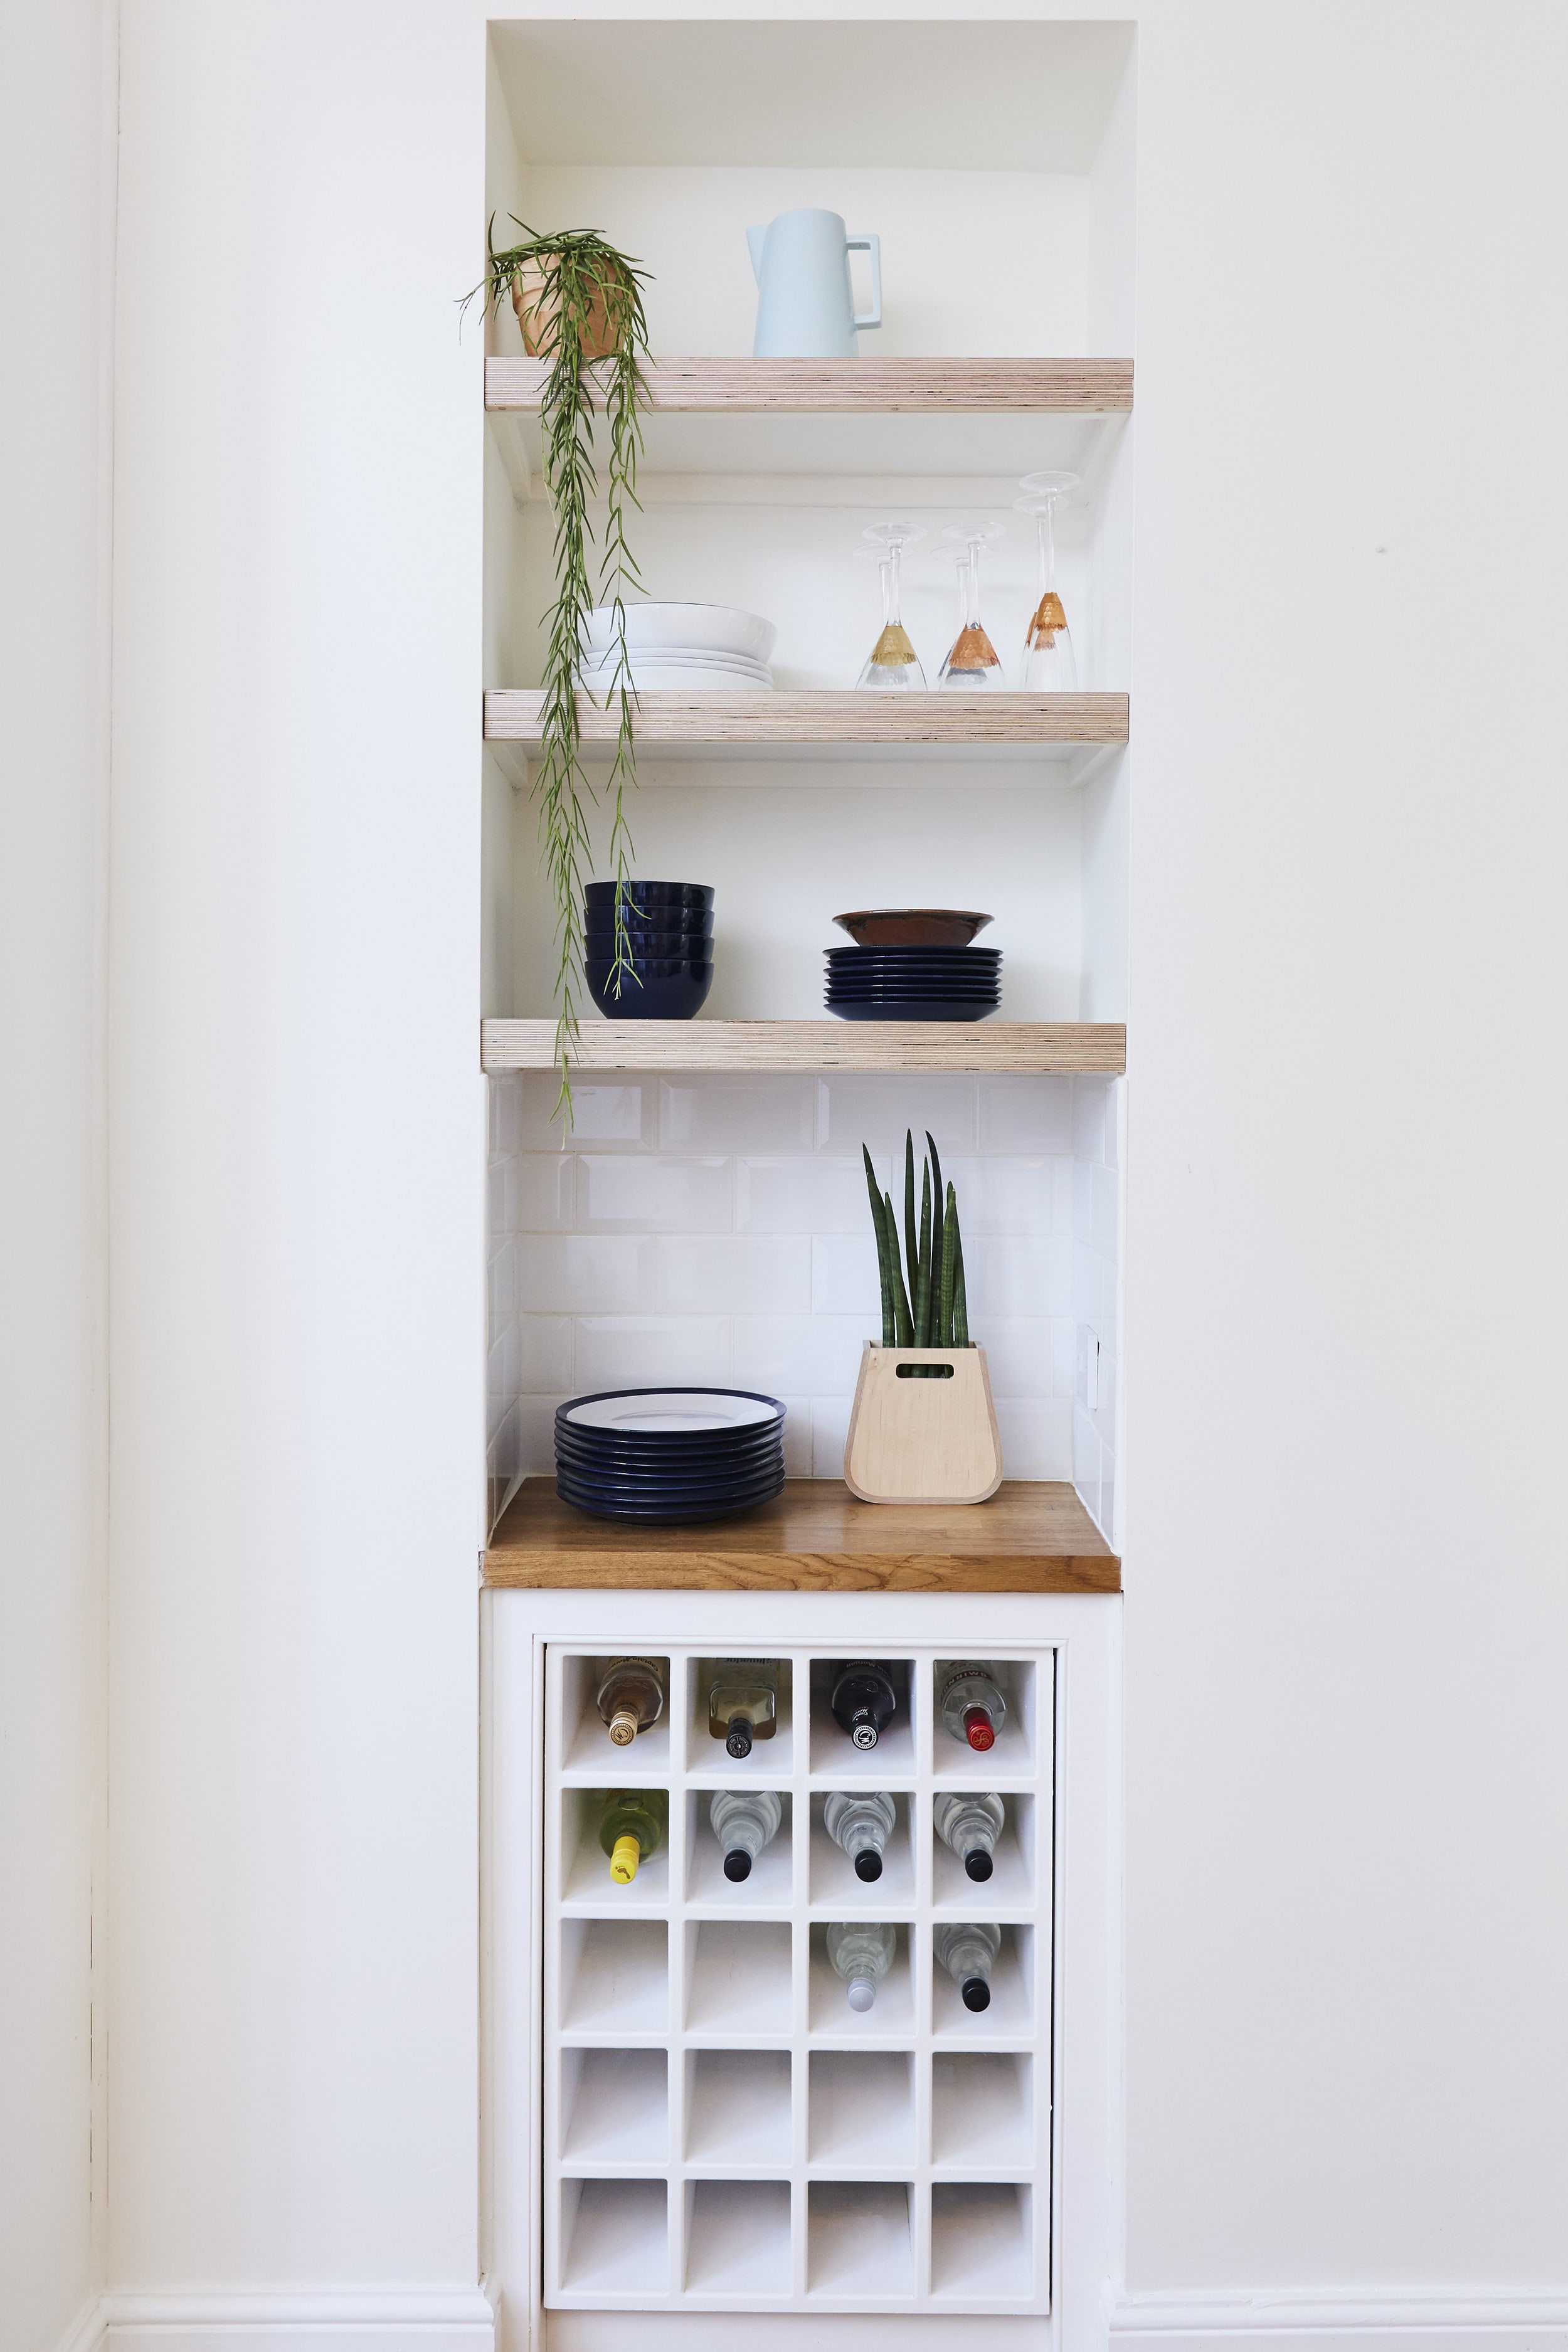 The fitted shelves hidden inside existing alcoves and cupboards create extra storage.